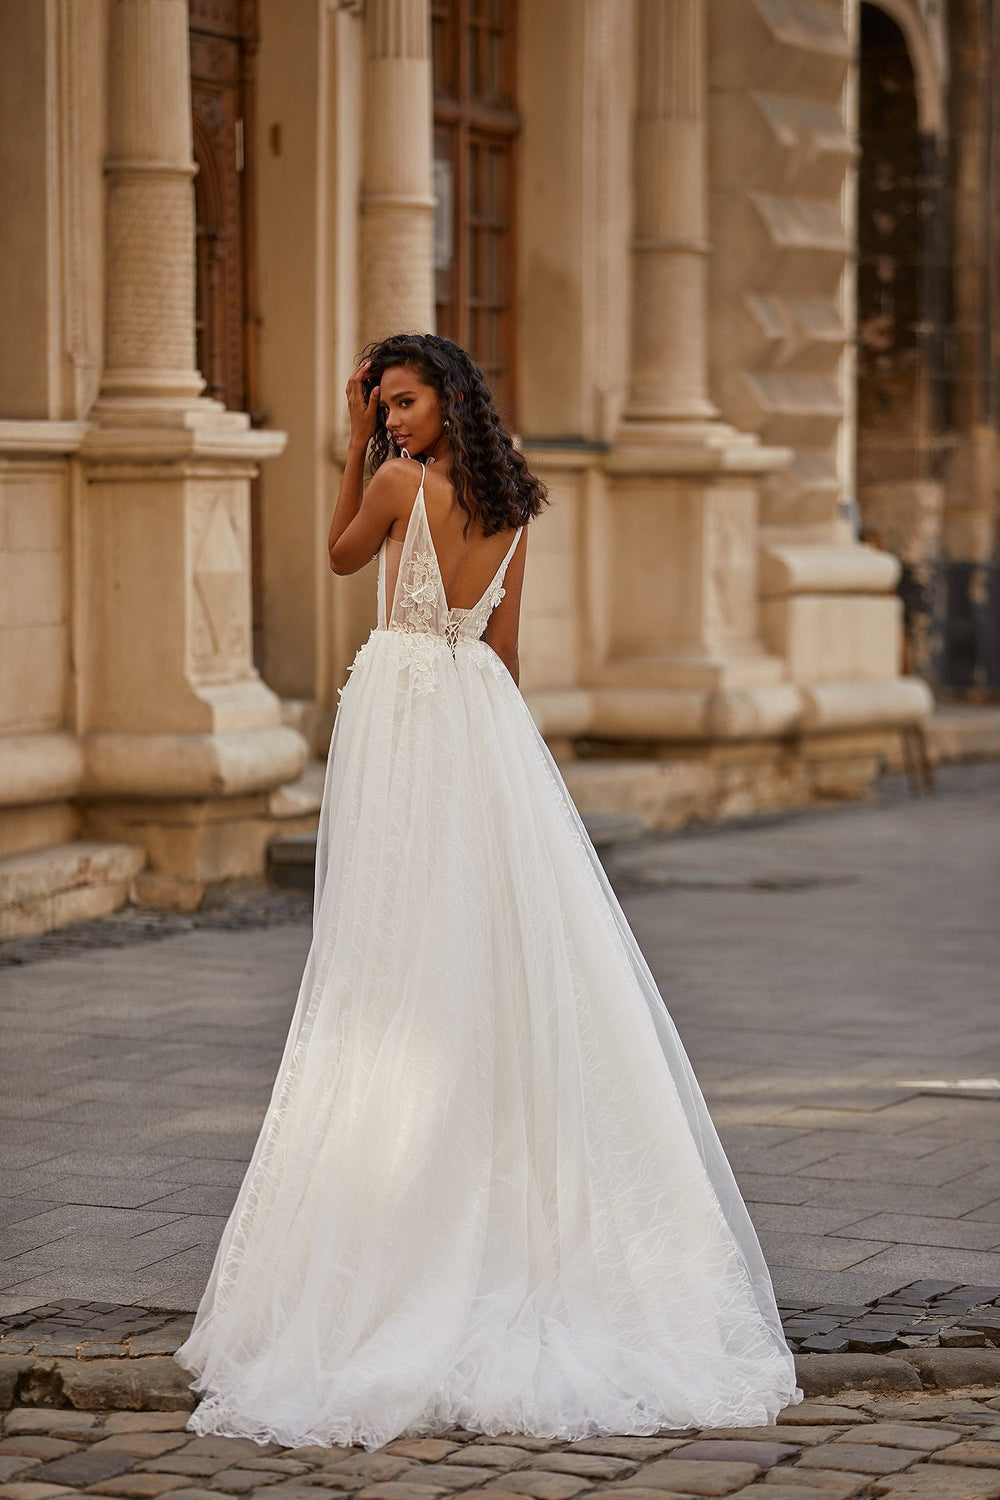 A&N Sian - White Embellished Boho Bridal Gown with Slit & Plunge Neck